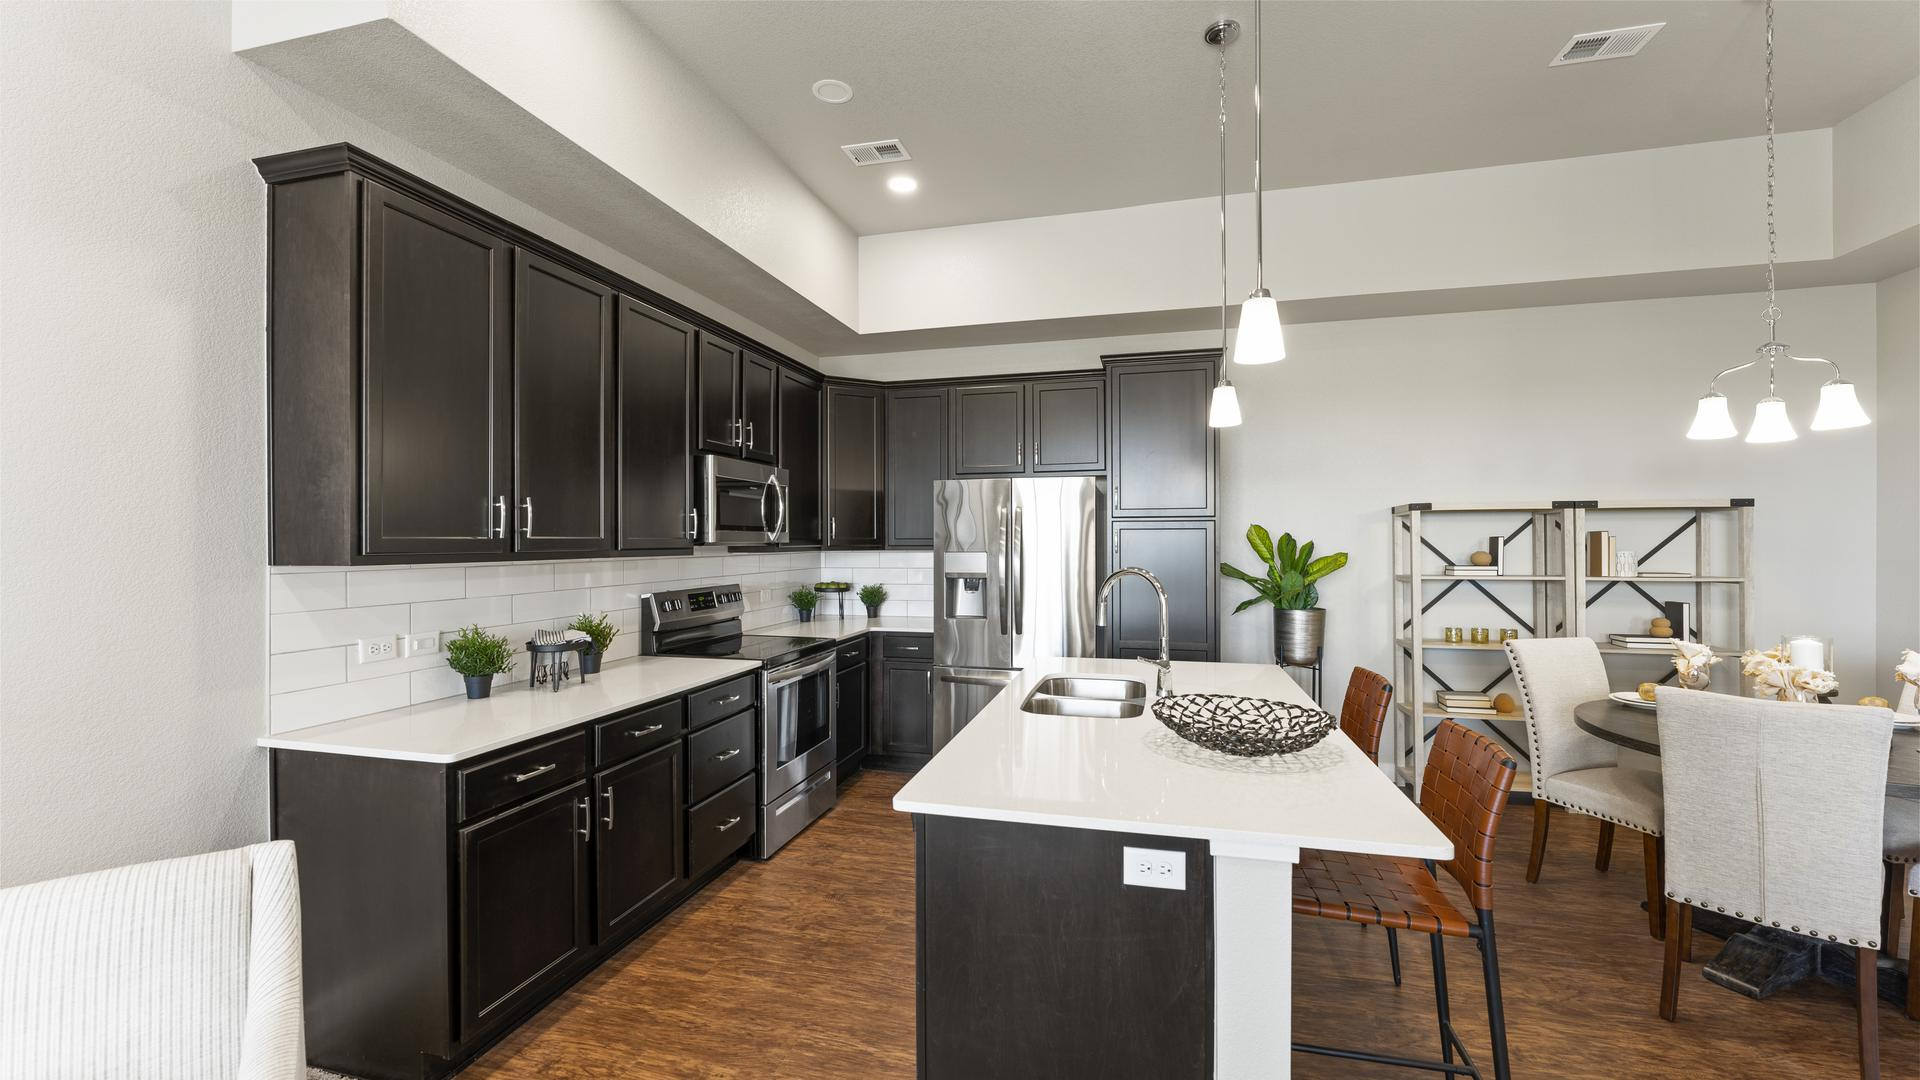 Kitchen - Not Actual Home - Finishes Will Vary . Monarch Home with 3 Bedrooms